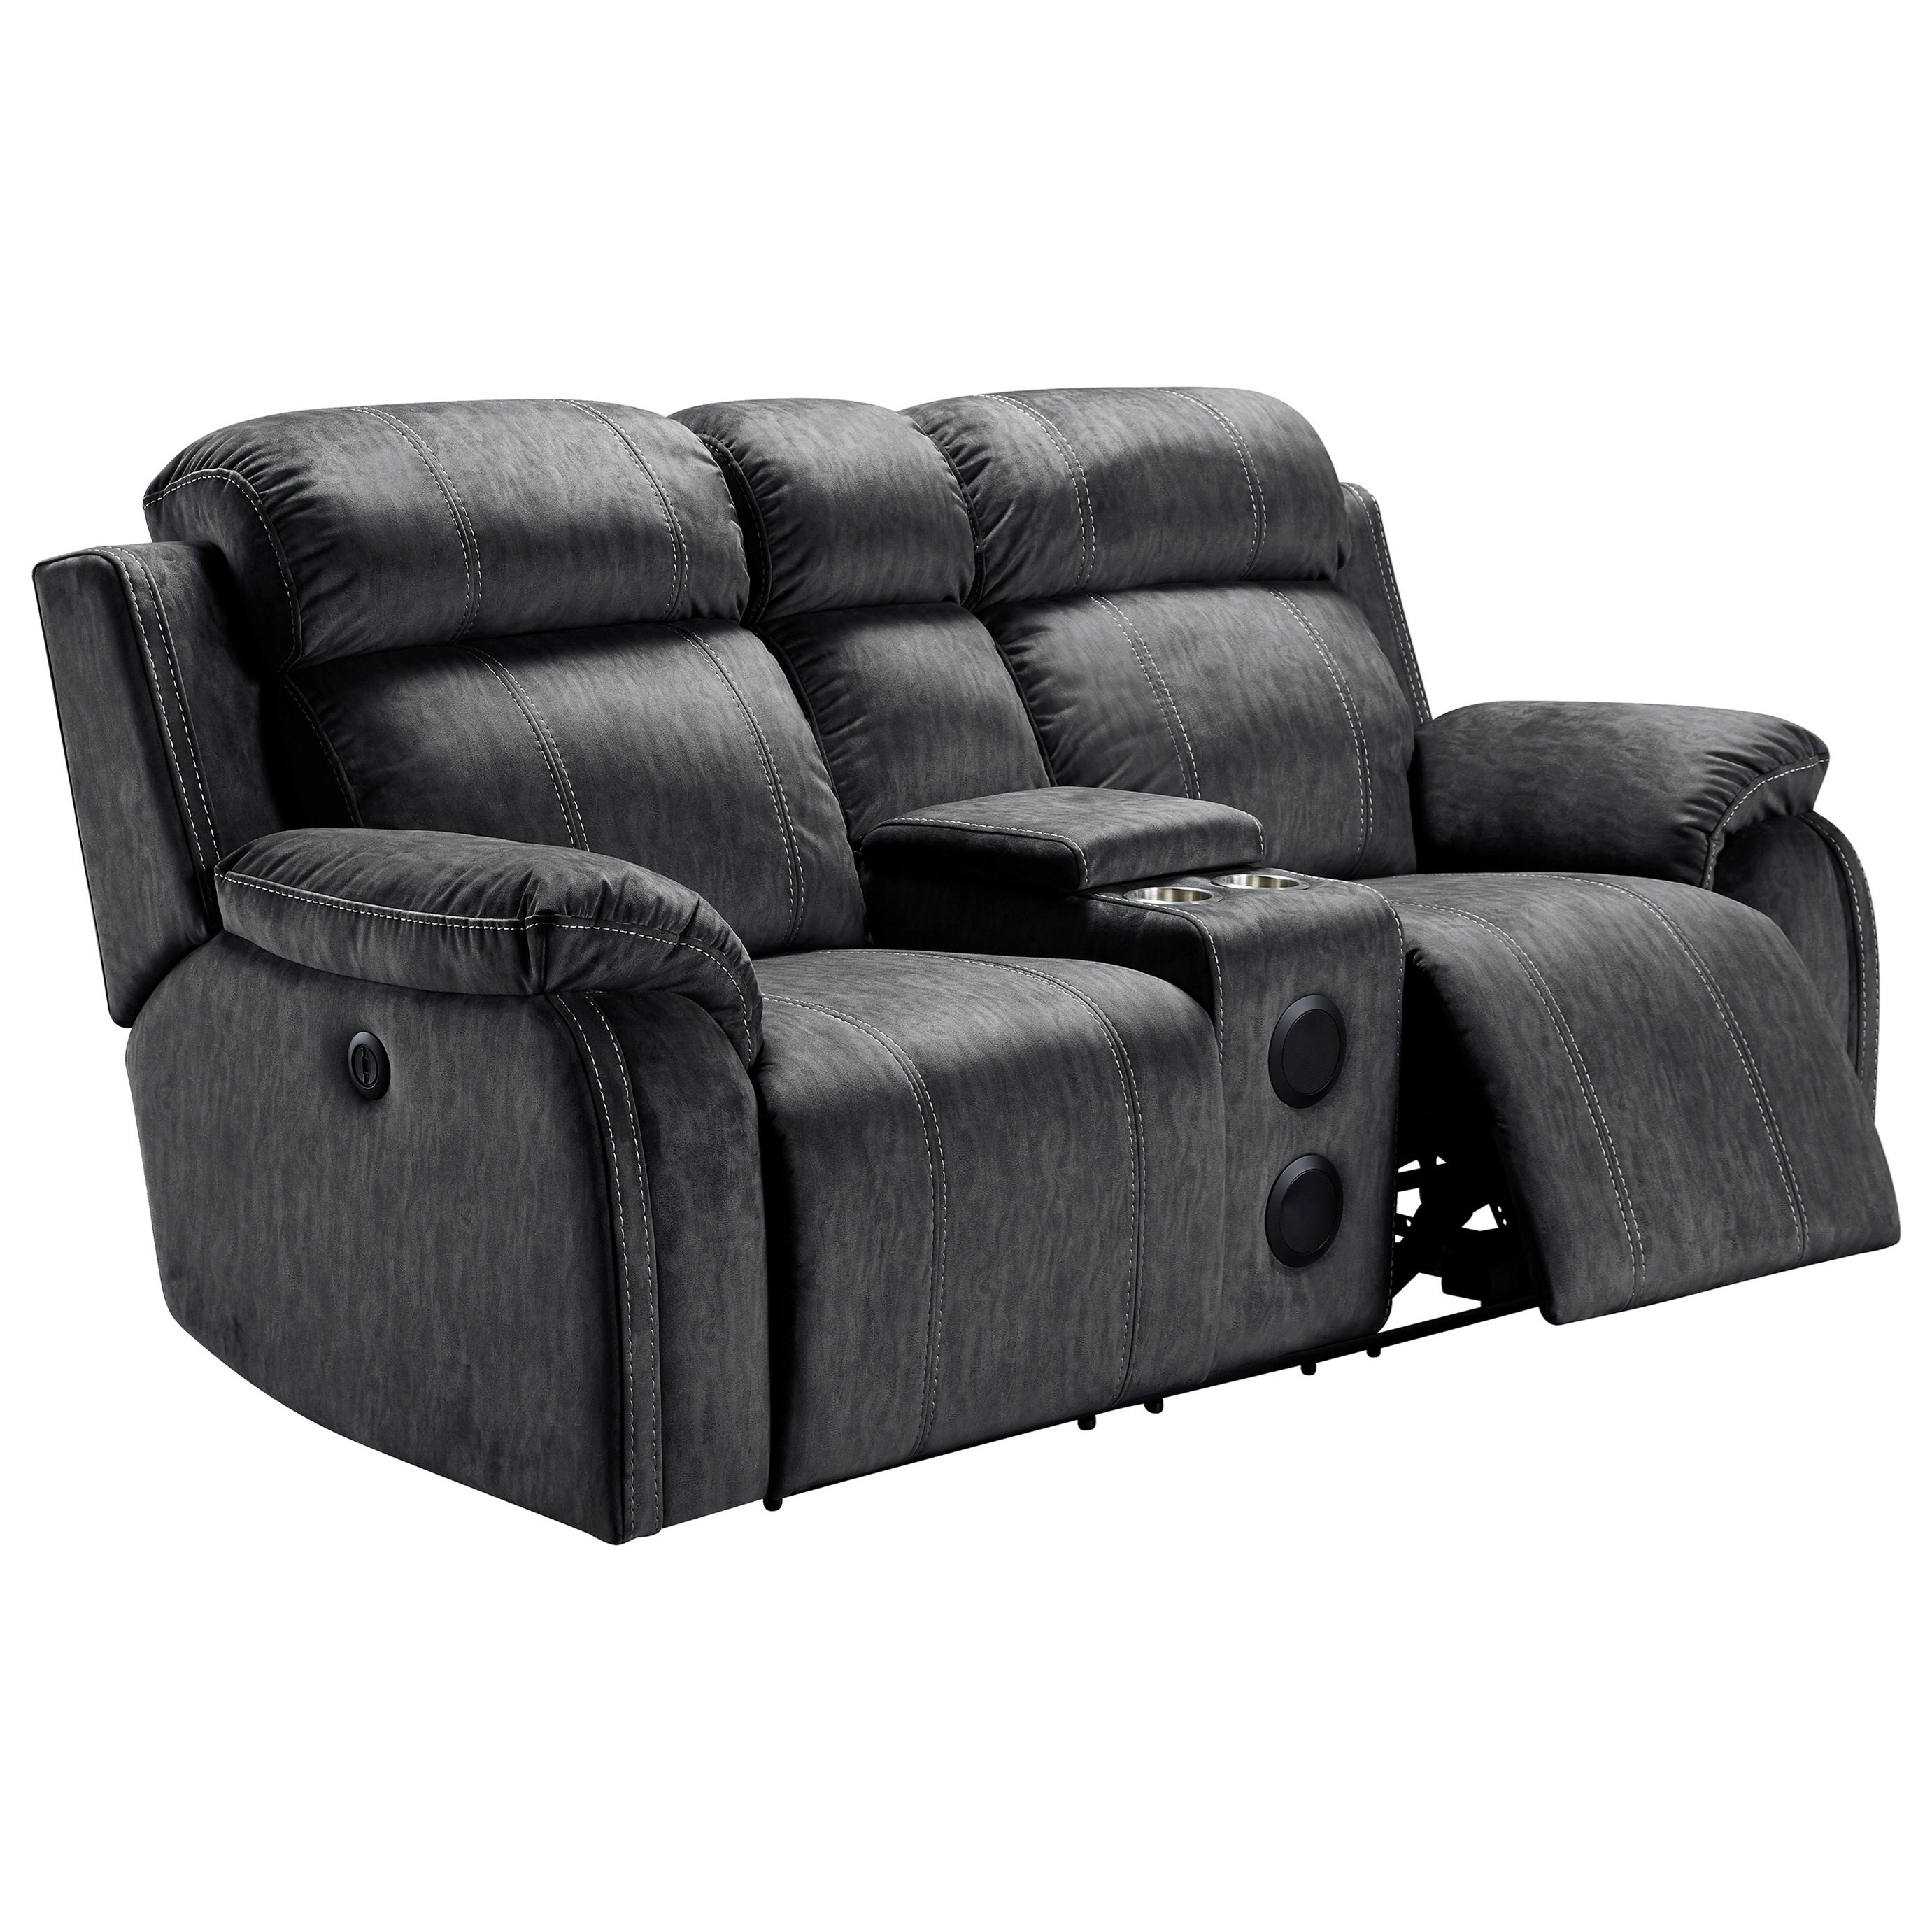 Tango Power Reclining Console Loveseat by New Classic at Rife's Home Furniture